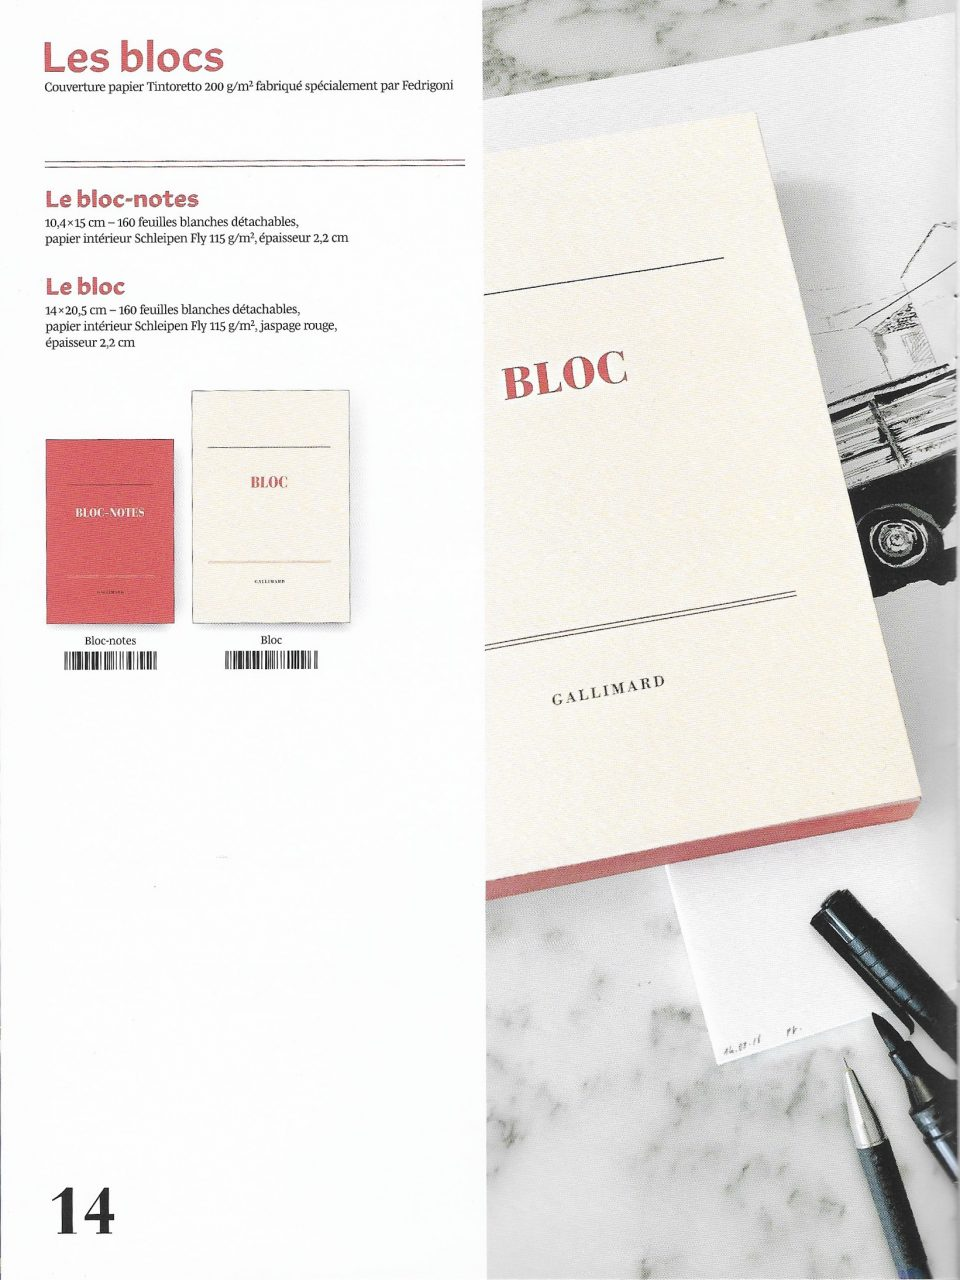 Catalogue des Editions Gallimard